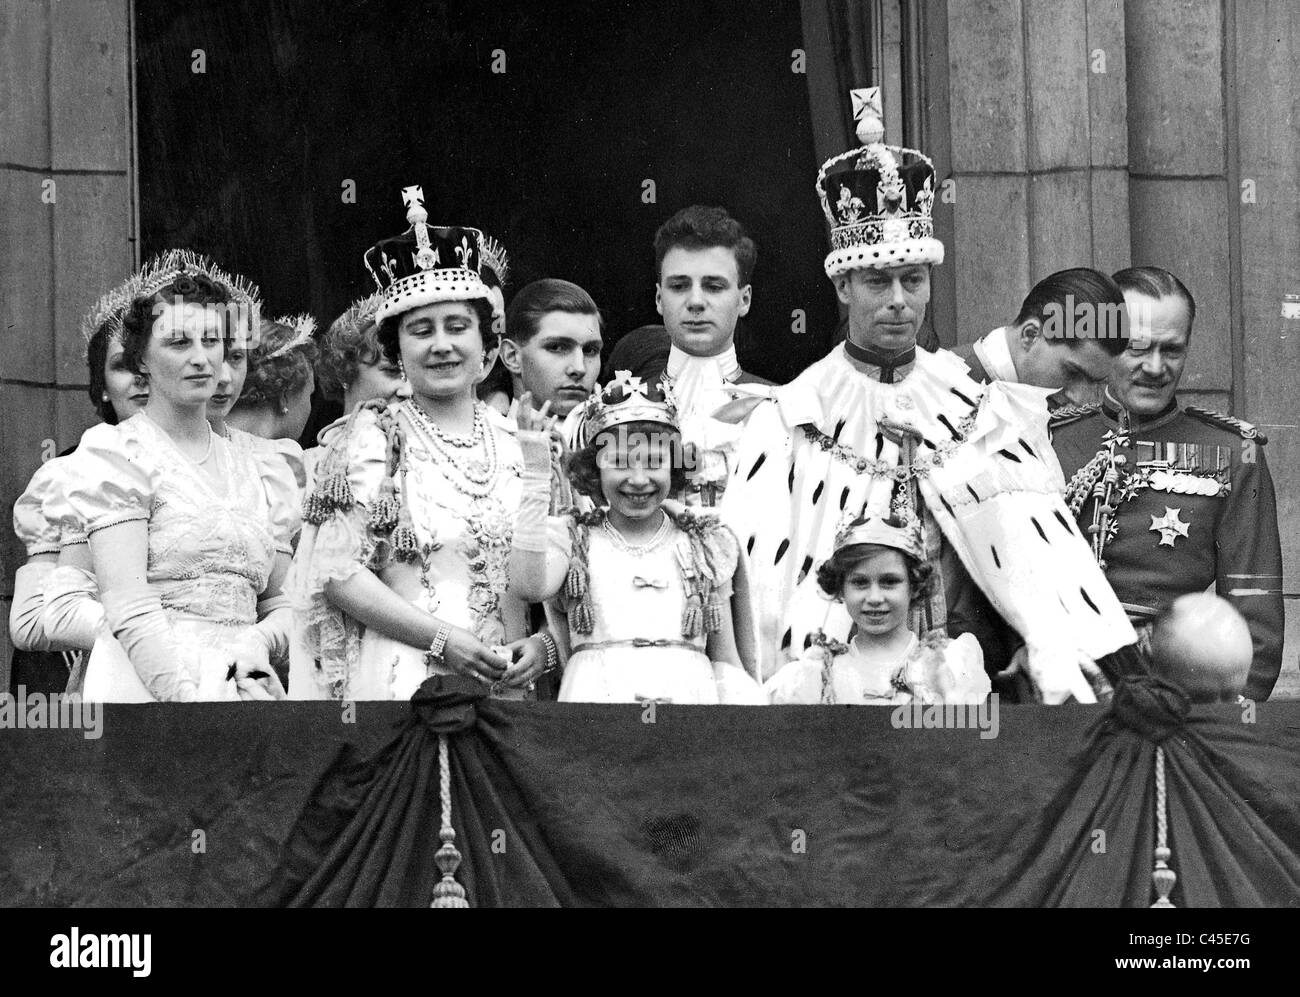 George VI. of Great Britain after the coronation, 1937